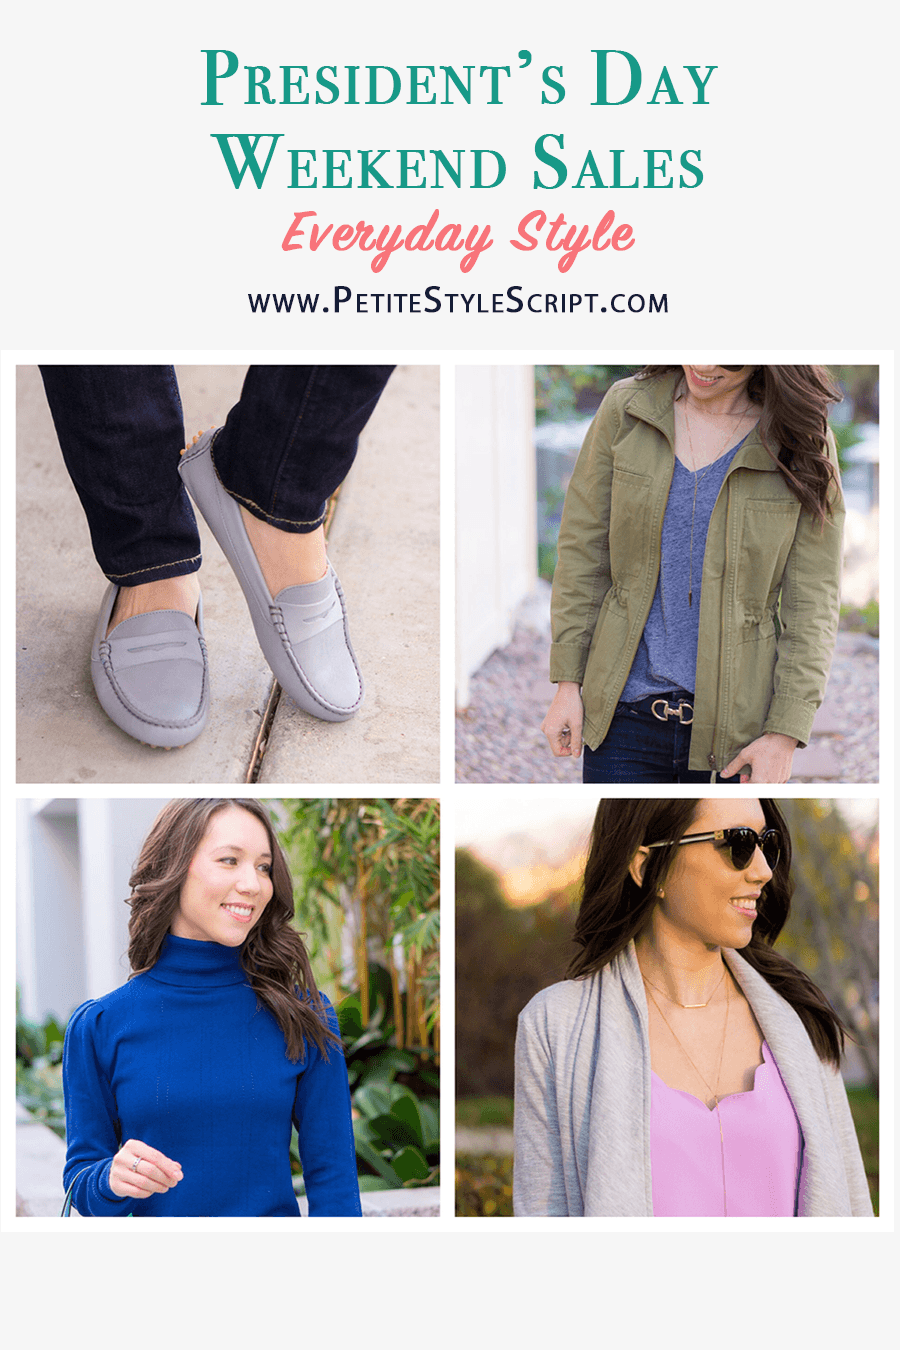 Contacting Nordstrom Headquarters. Nordstrom is a retail company selling clothing and accessories for men and women. You can contact a personal stylist to help you find the best outfit, check clothing sizes and availability and more.